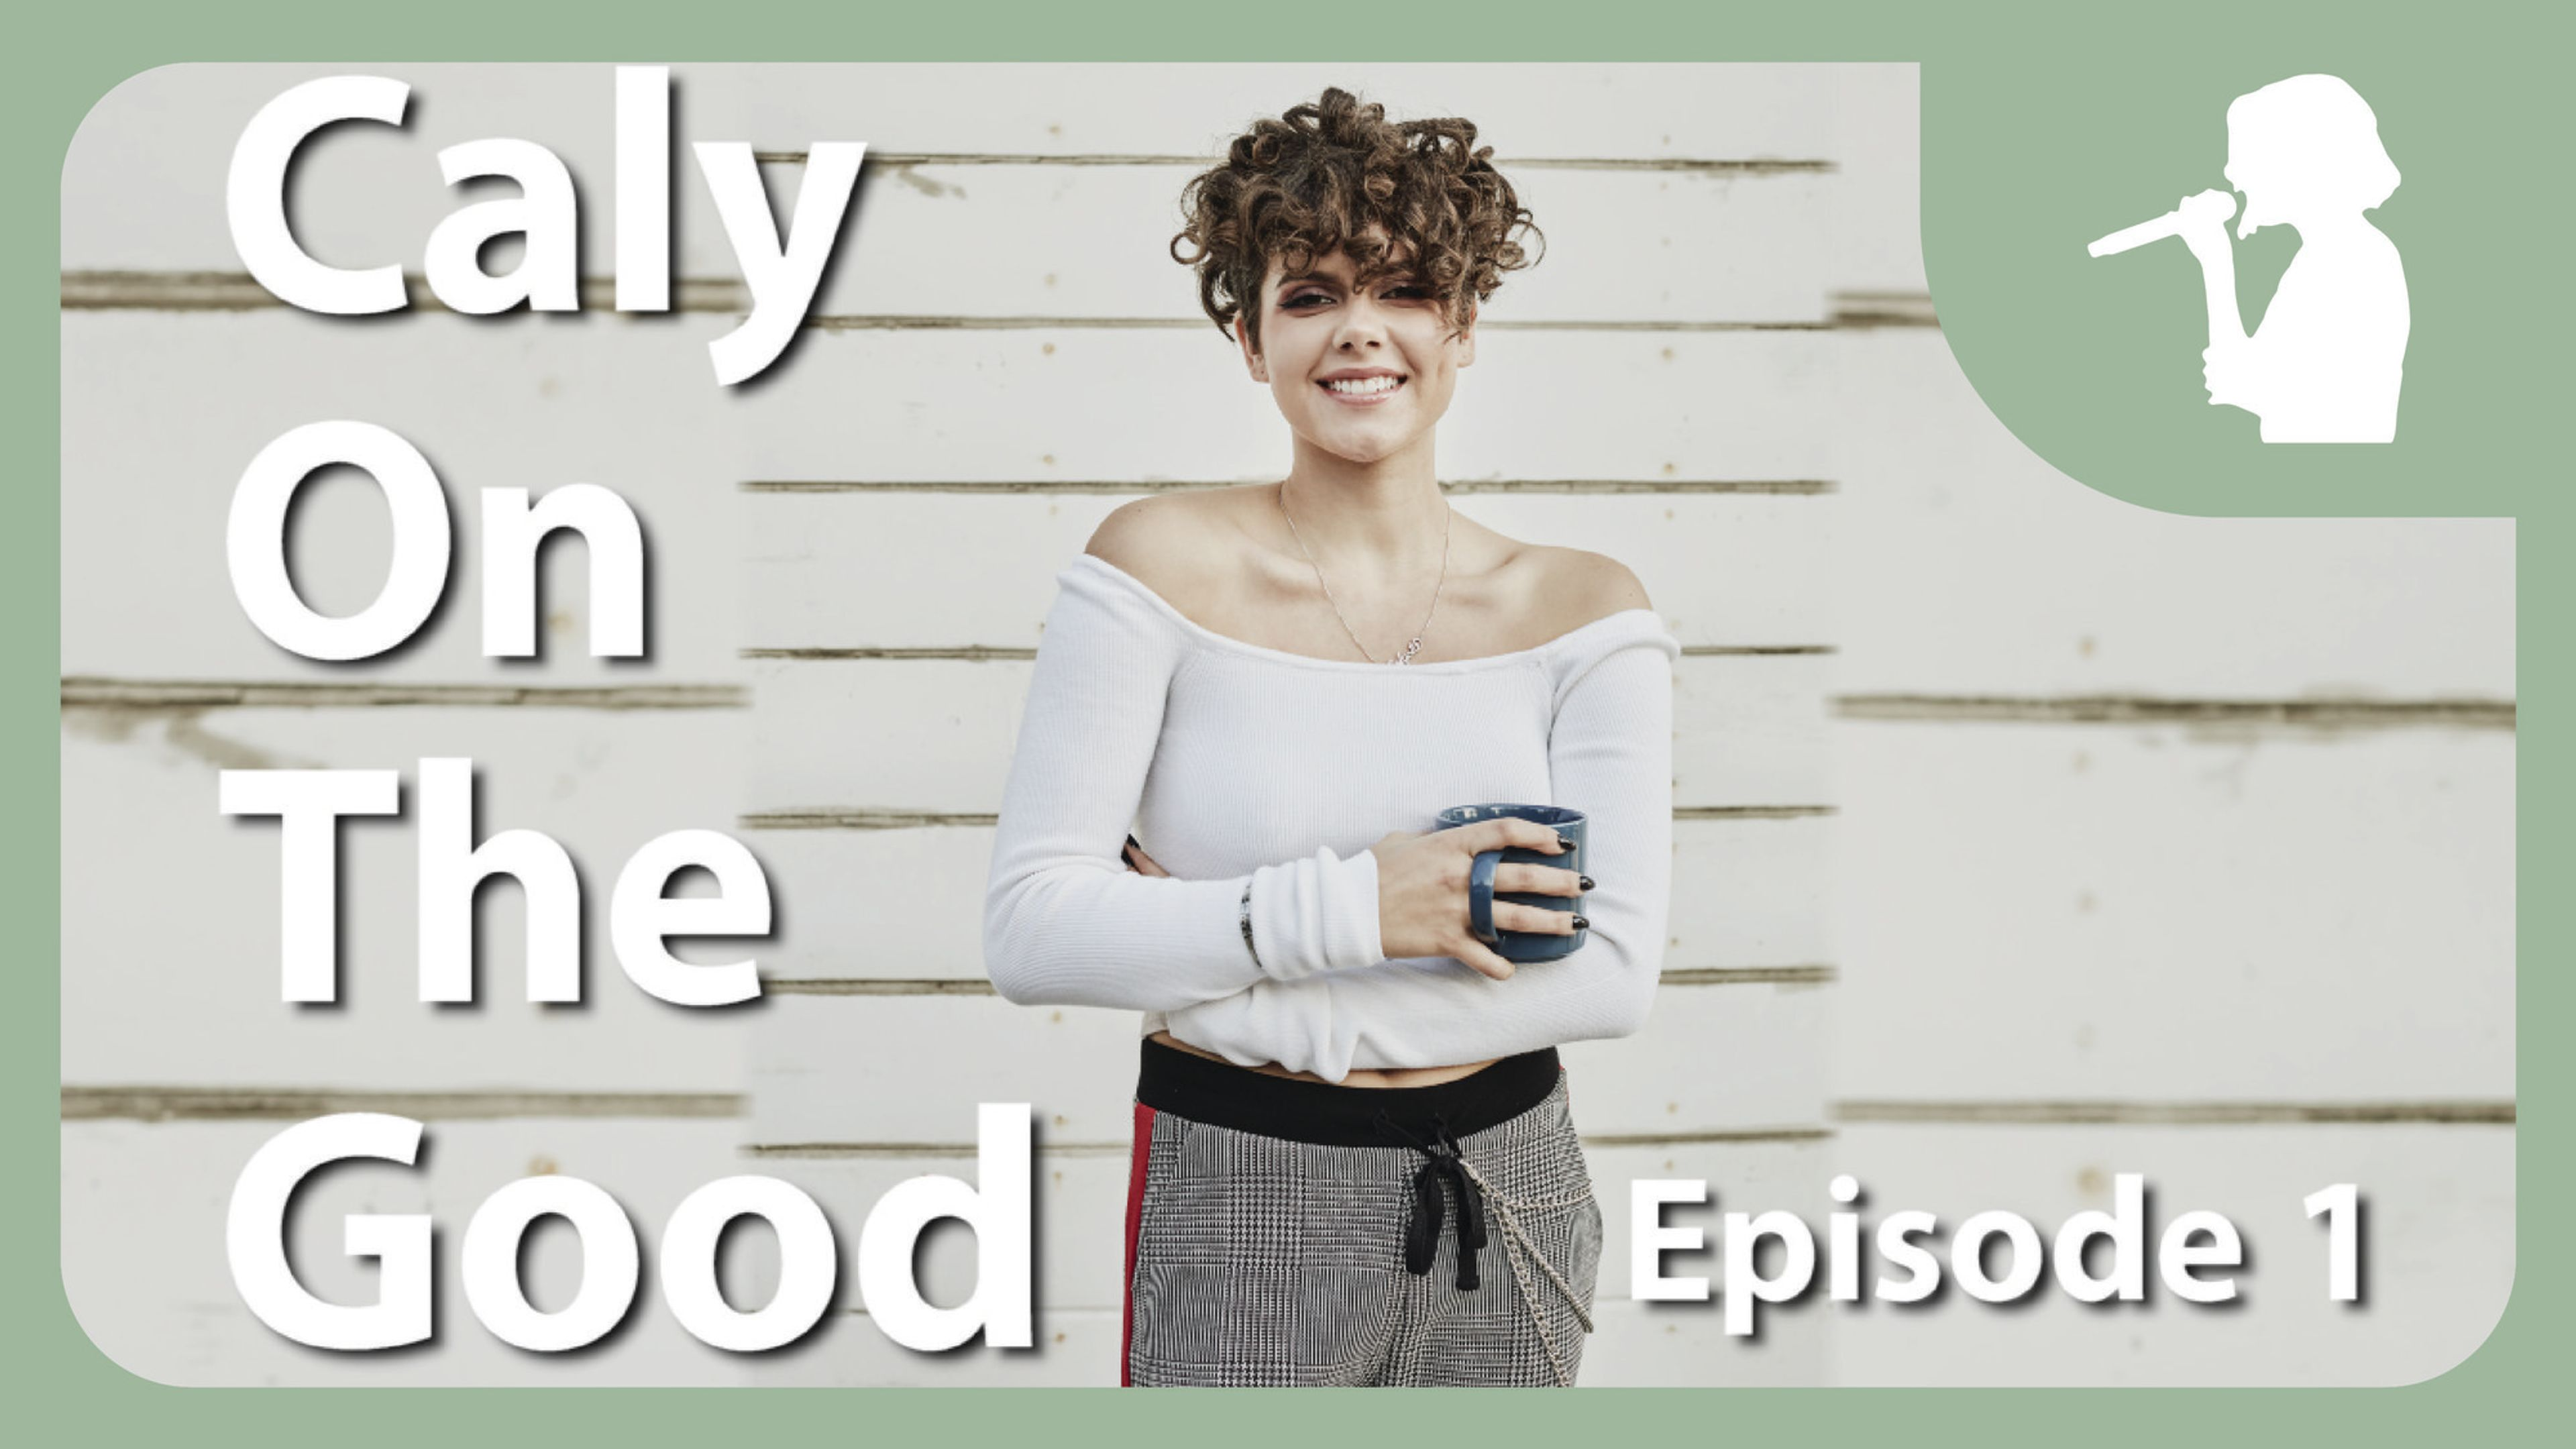 SERIES: Caly on the Good – Rising Pop Star and cancer survivor Caly Bevier is using her voice change the world!